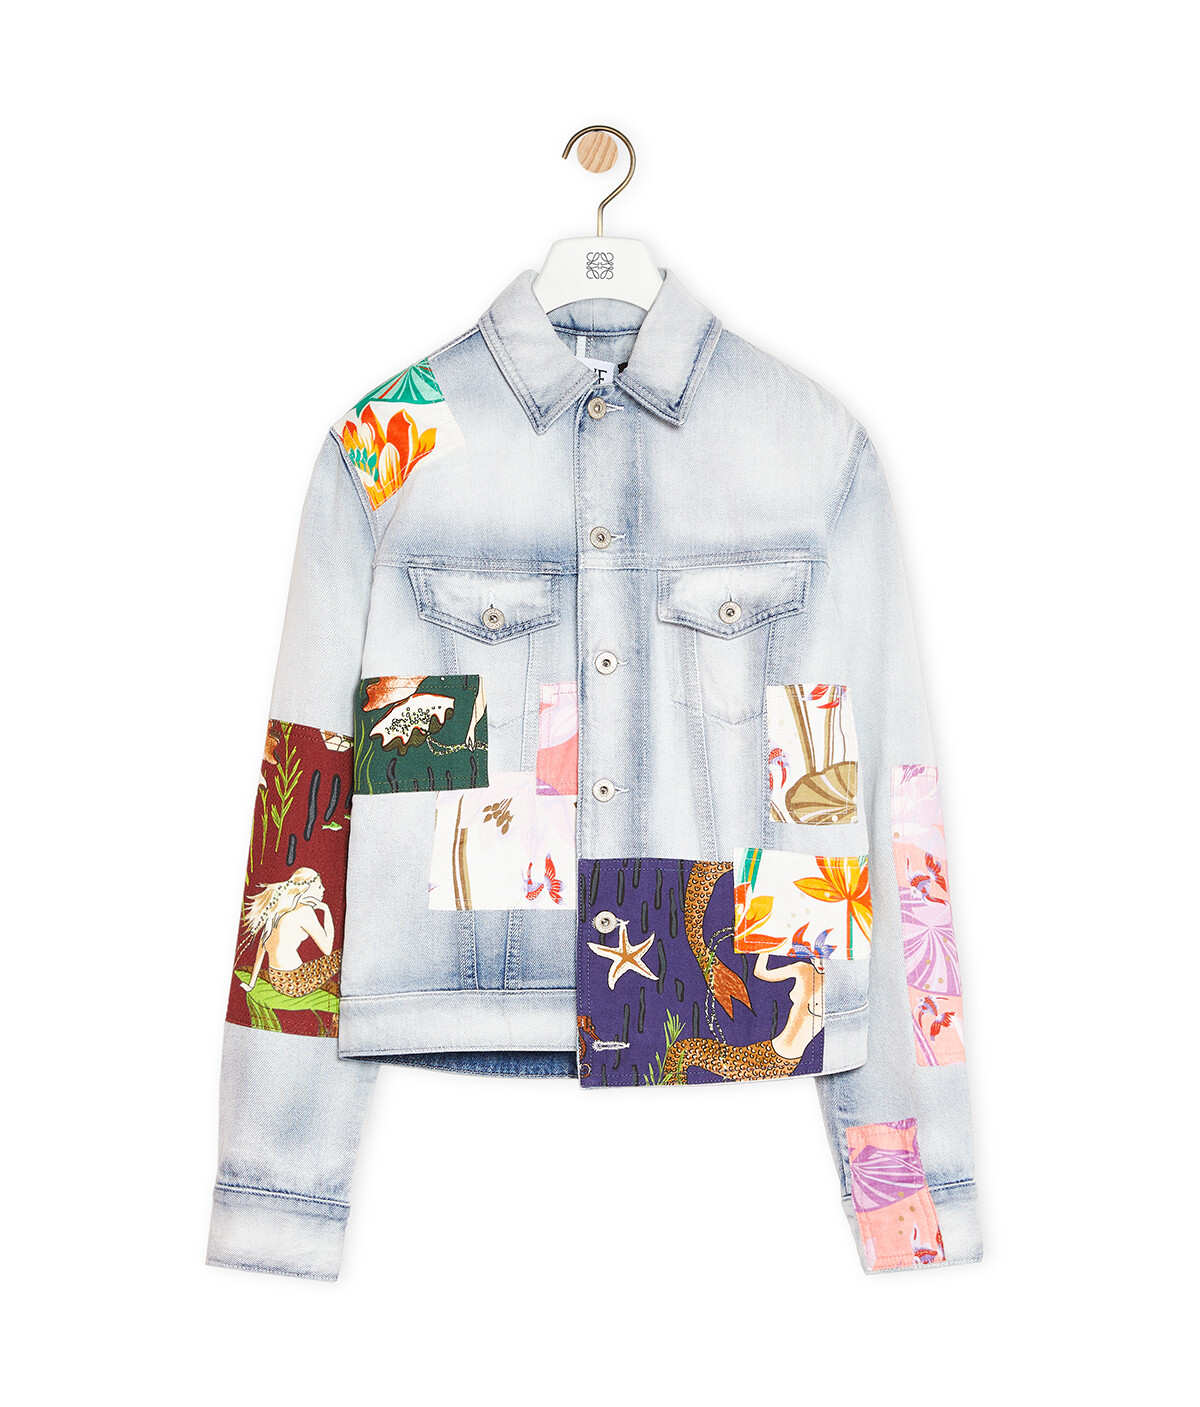 LOEWE Patched Jacket In Cotton Light Blue/Multicolor front